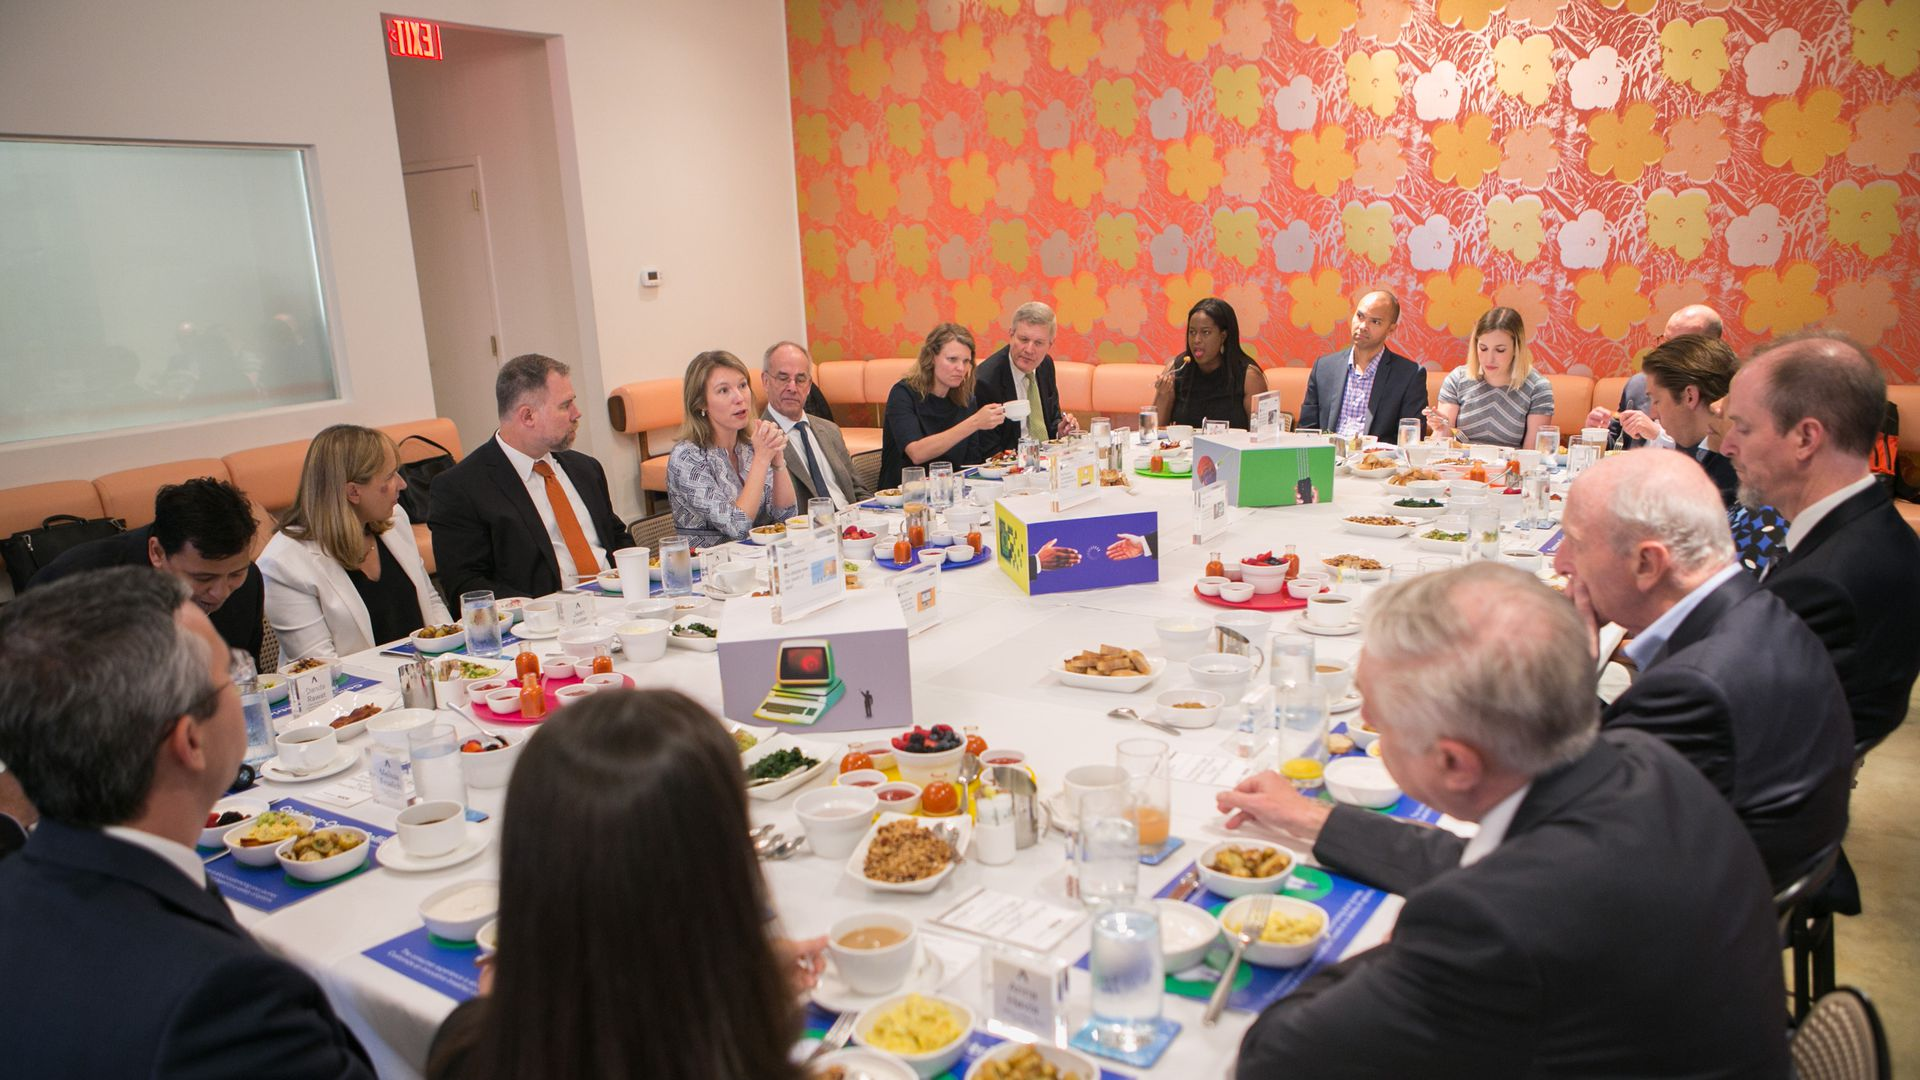 A large table with Kim Hart and 25 experts gathered for a conversation over breakfast